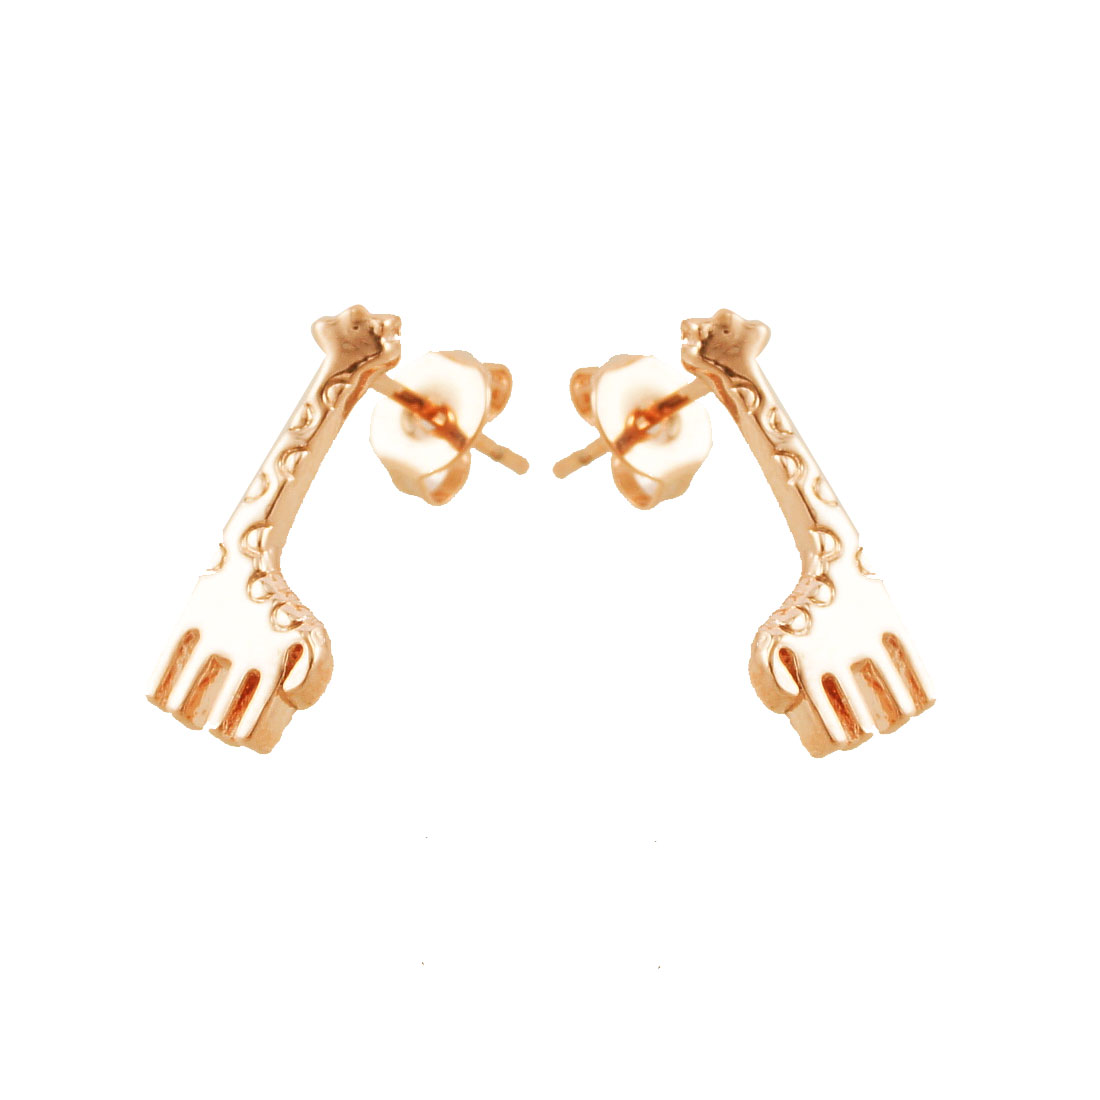 Pair Gold Tone Giraffe Shaped Ear Studs Earrings for Women